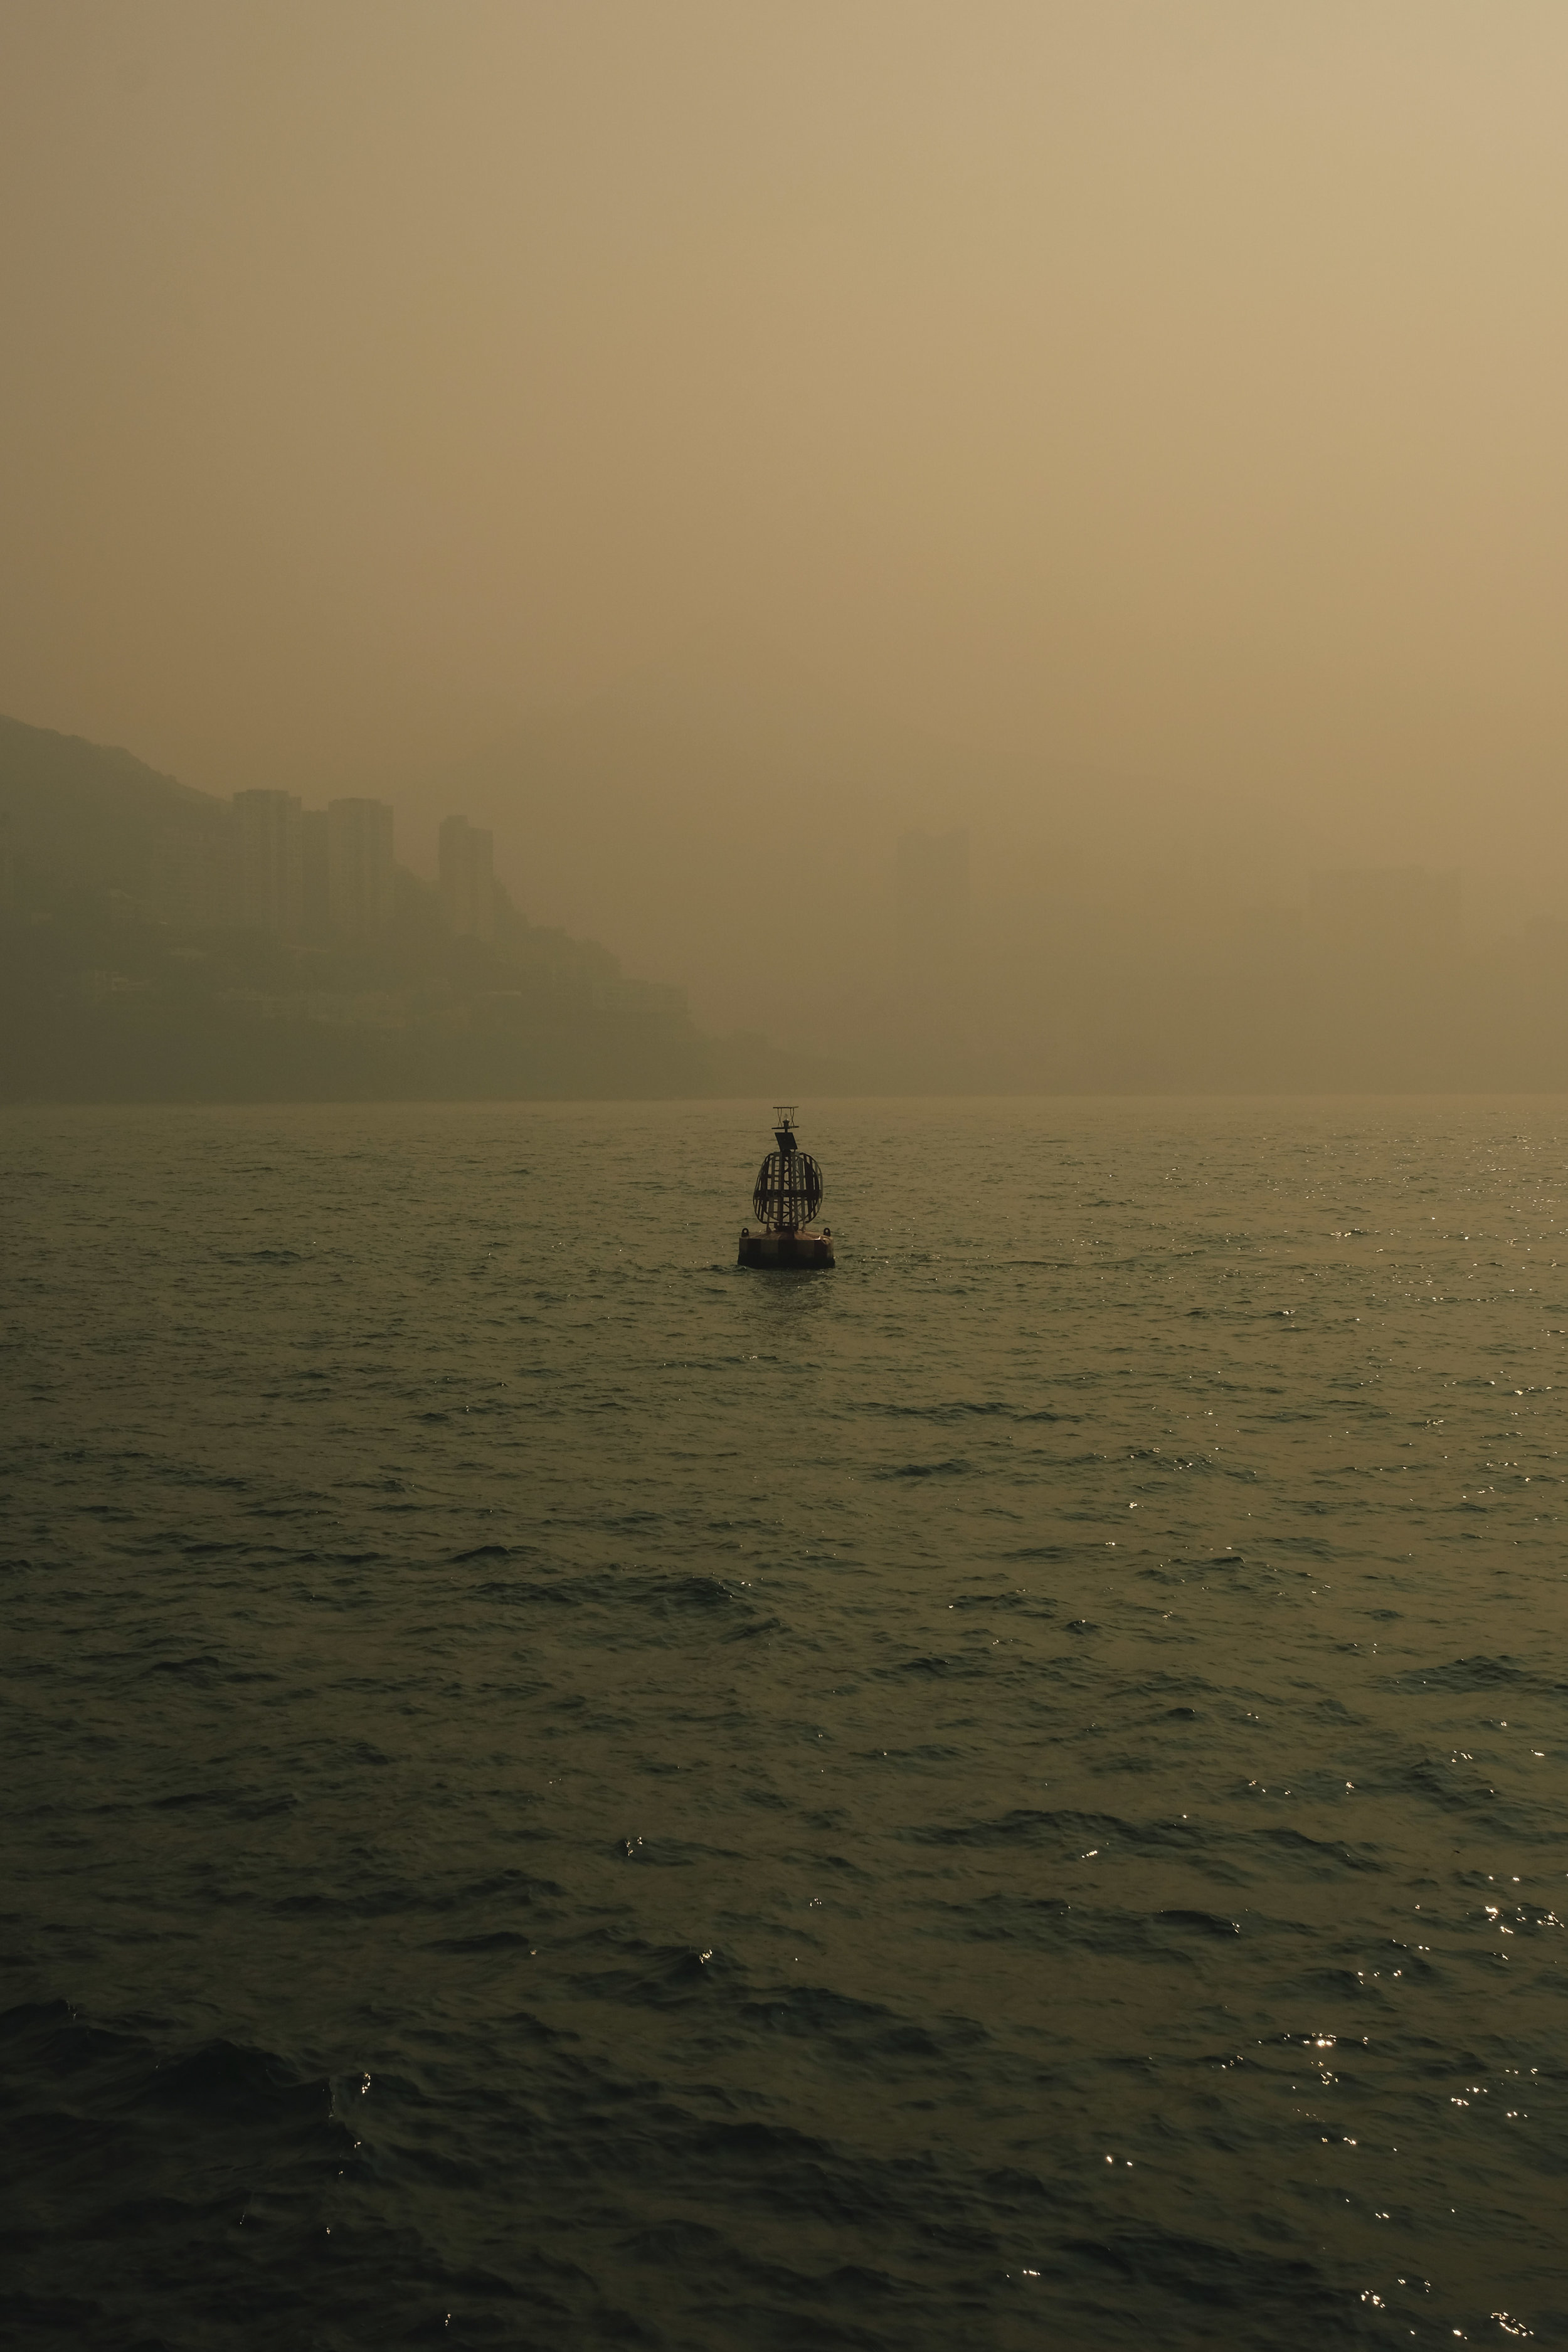 View from the ferry on a hazy morning